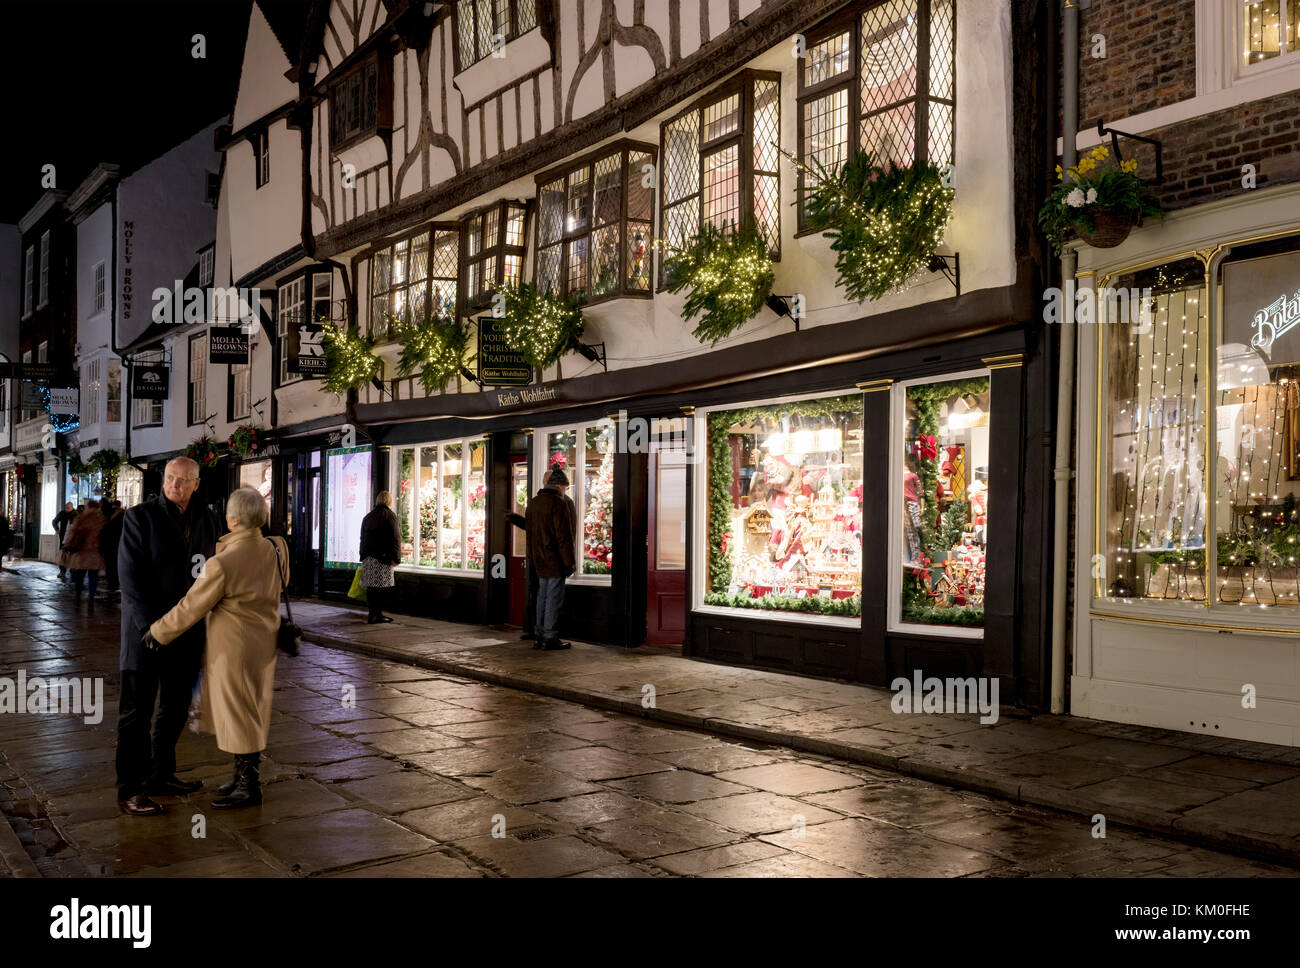 A couple pausing while Christmas shopping in Stonegate, York, UK - Stock Image